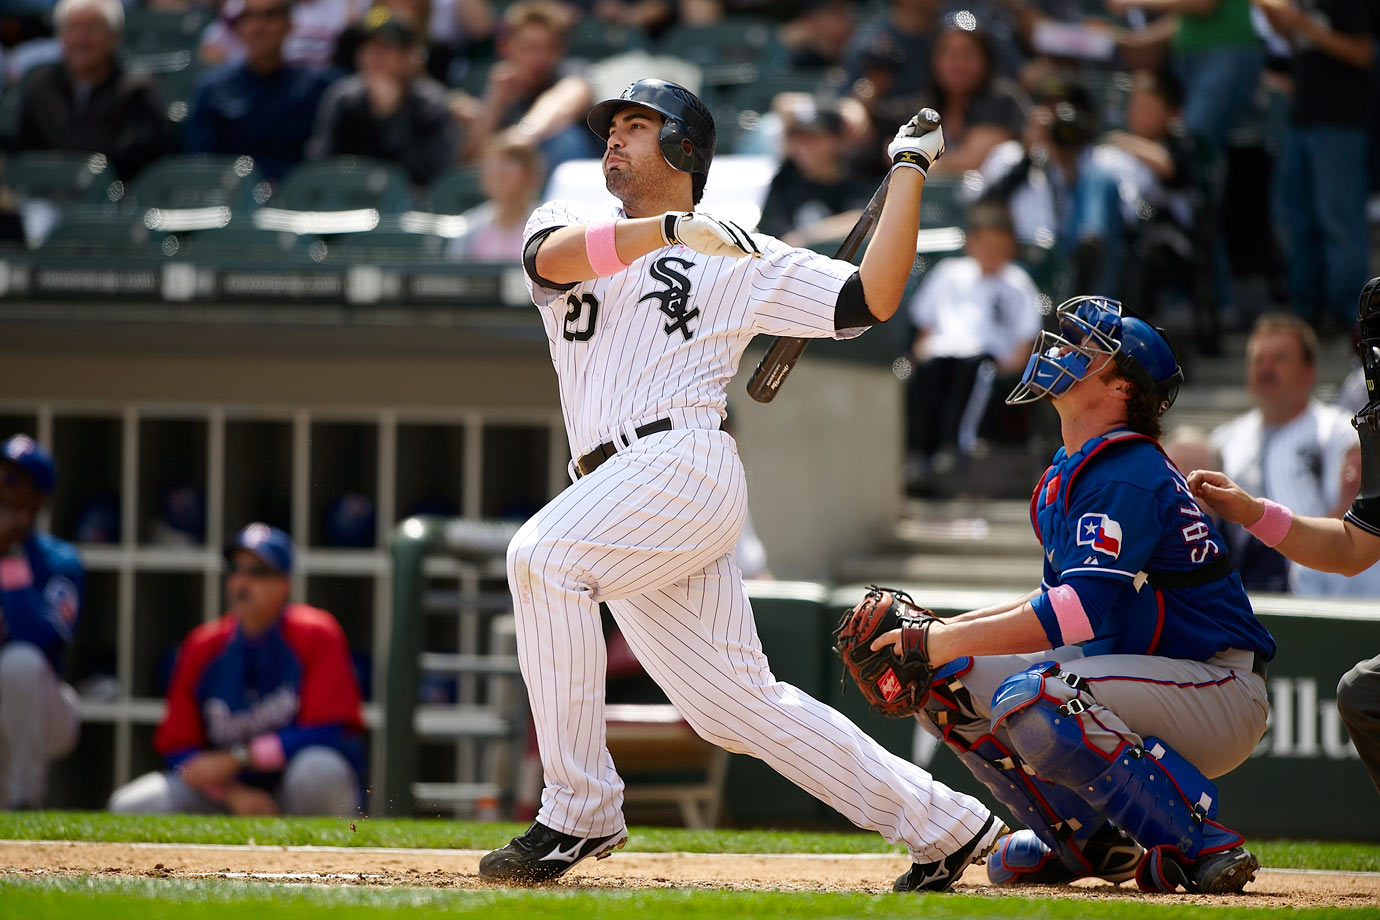 It was reported on May 1 that two-time All-Star Carlos Quentin would retire. Quentin played nine Major League seasons, batting .252 with 154 home runs. His best year came in 2008 while playing for the White Sox, when he batted .288 with 36 home runs (second in the league) and 100 RBIs and finished fifth in AL MVP voting. Quentin struggled with injuries throughout his career. After becoming a regular in 2008, he averaged only 99 games per season over the next seven seasons.